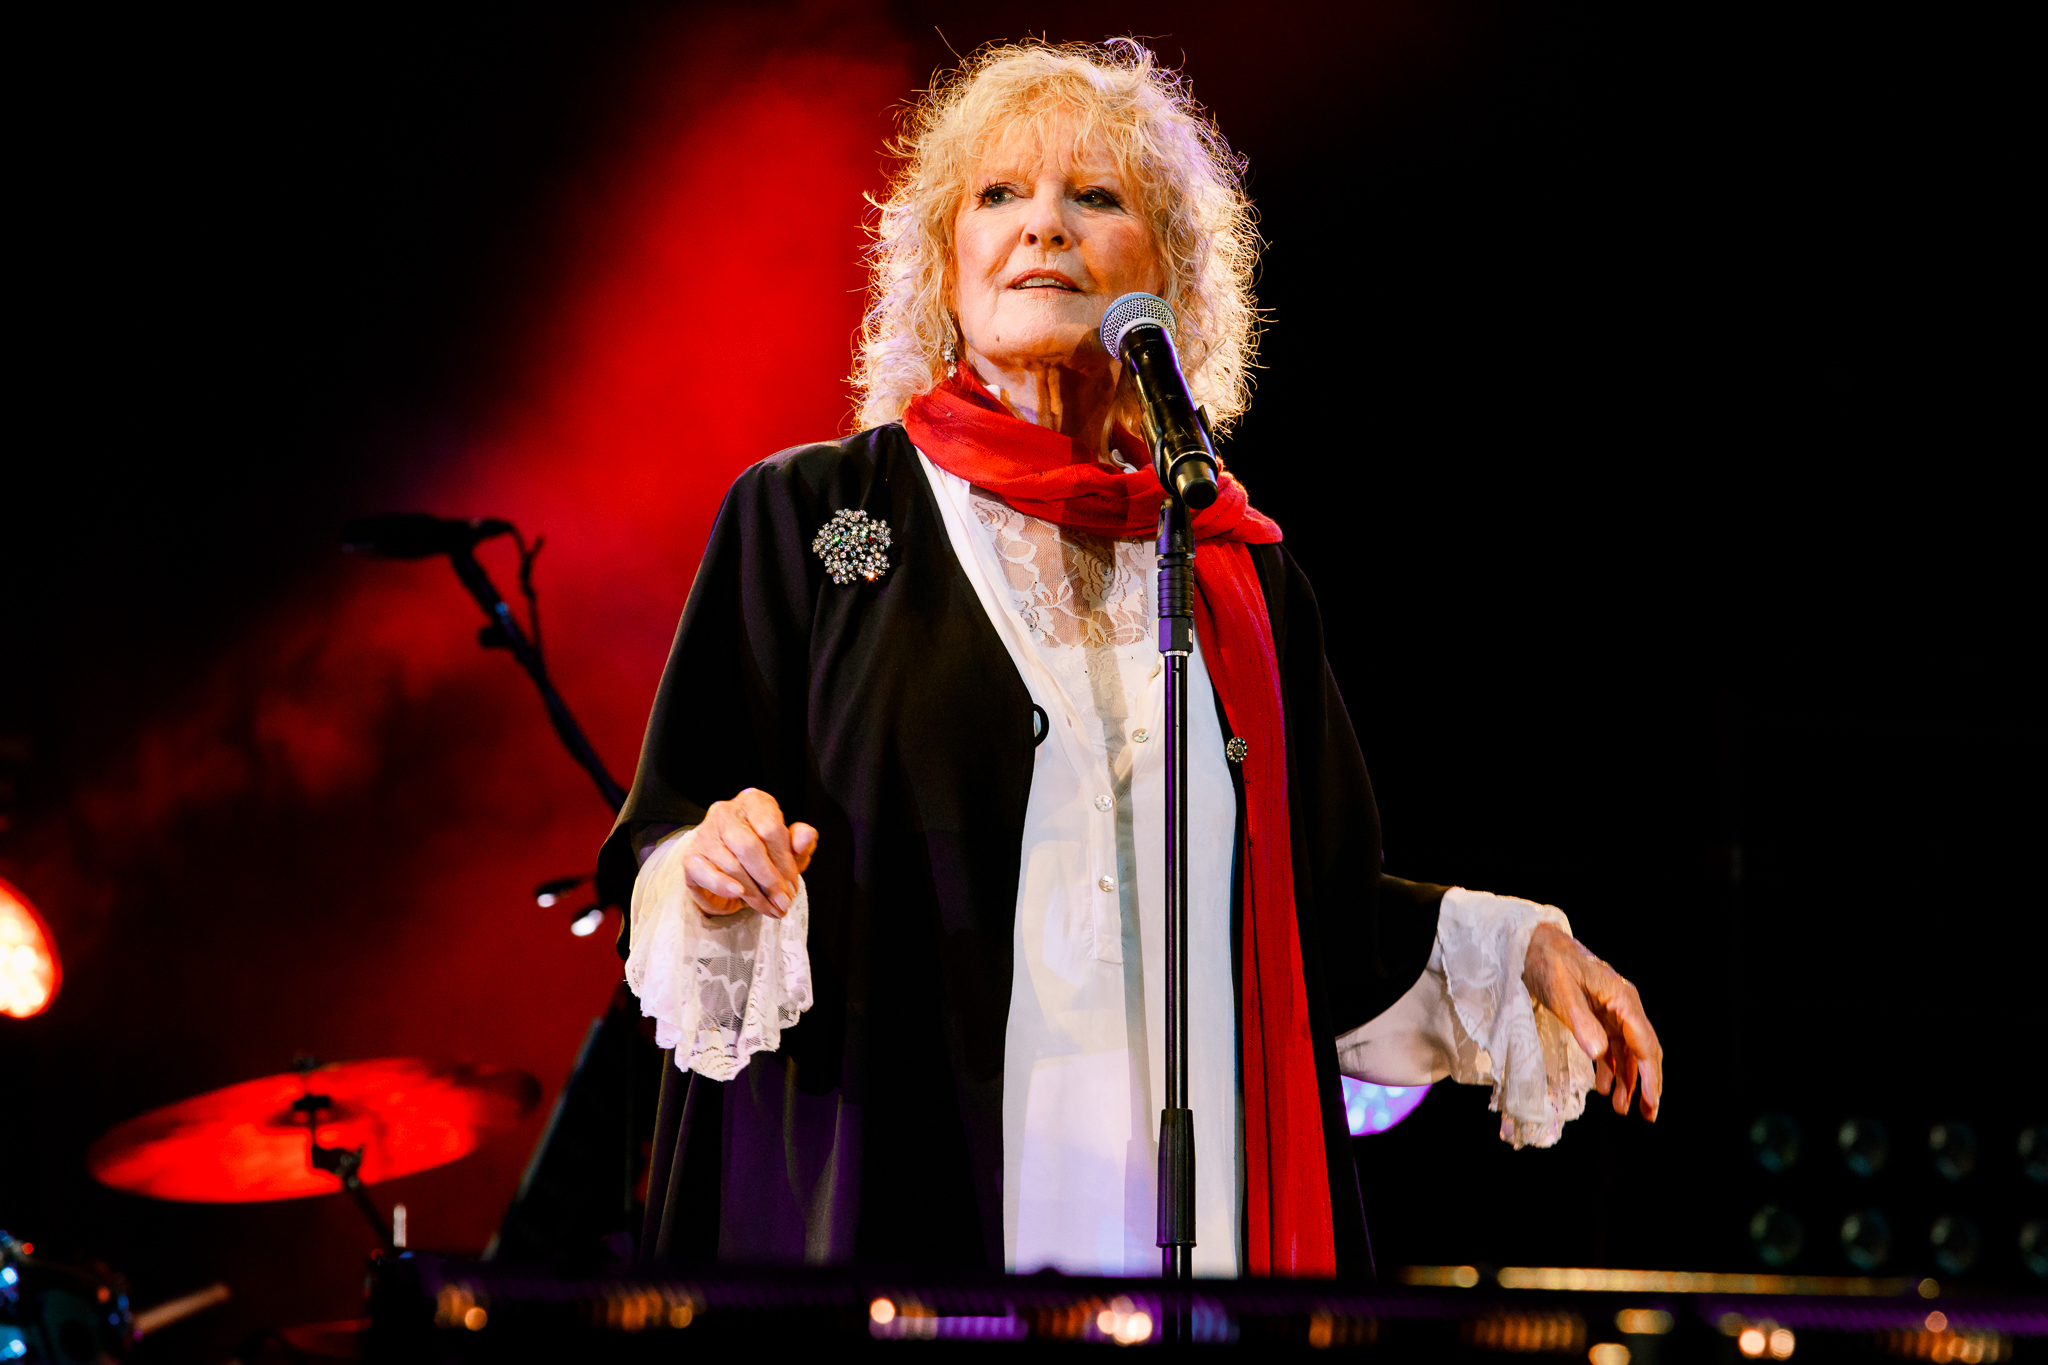 Petula Clark began her music career in 1942, but her new album  From Now On ranks up there with her best work. She headlined the second night of the festival. (photo by Matt Condon /  @arcane93 )